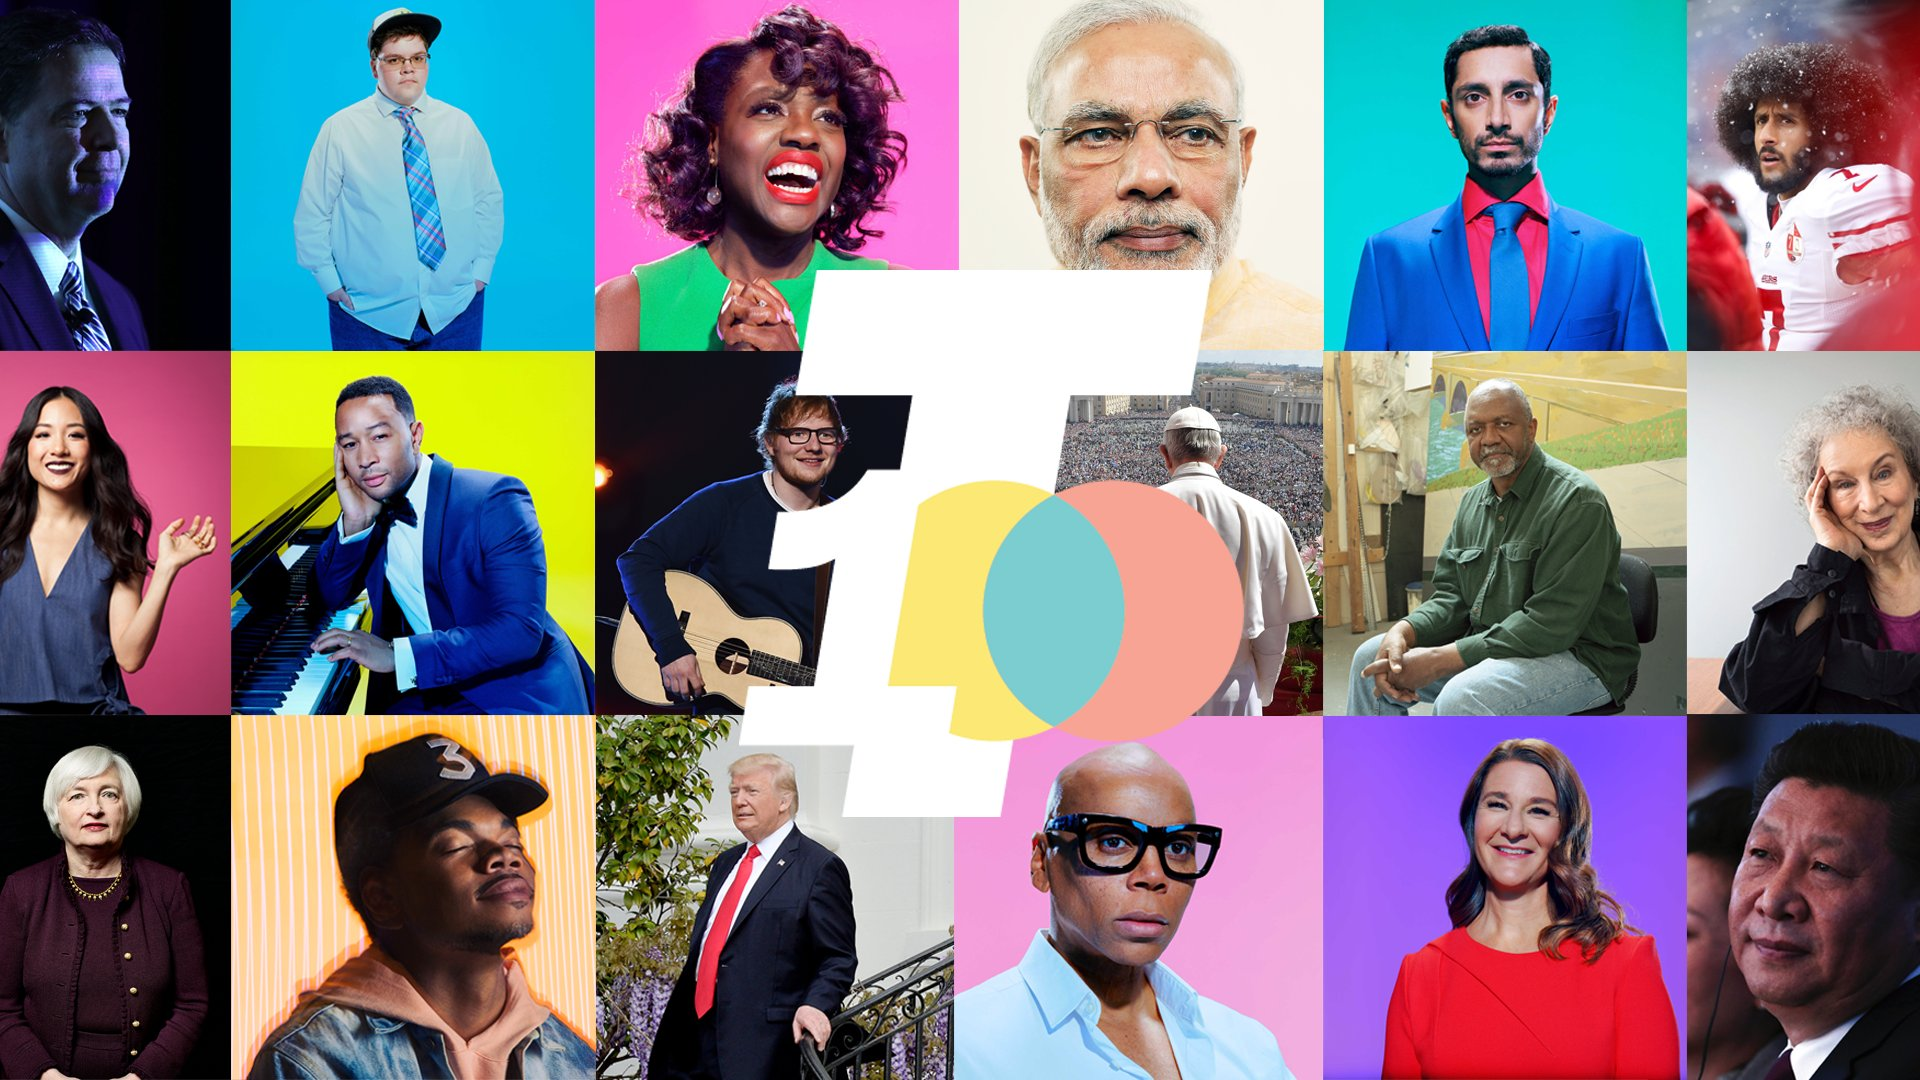 How we chose the 100 most influential people in the world for the 2017 #TIME100 https://t.co/nLyufiSRSY https://t.co/iBIdt6faRW